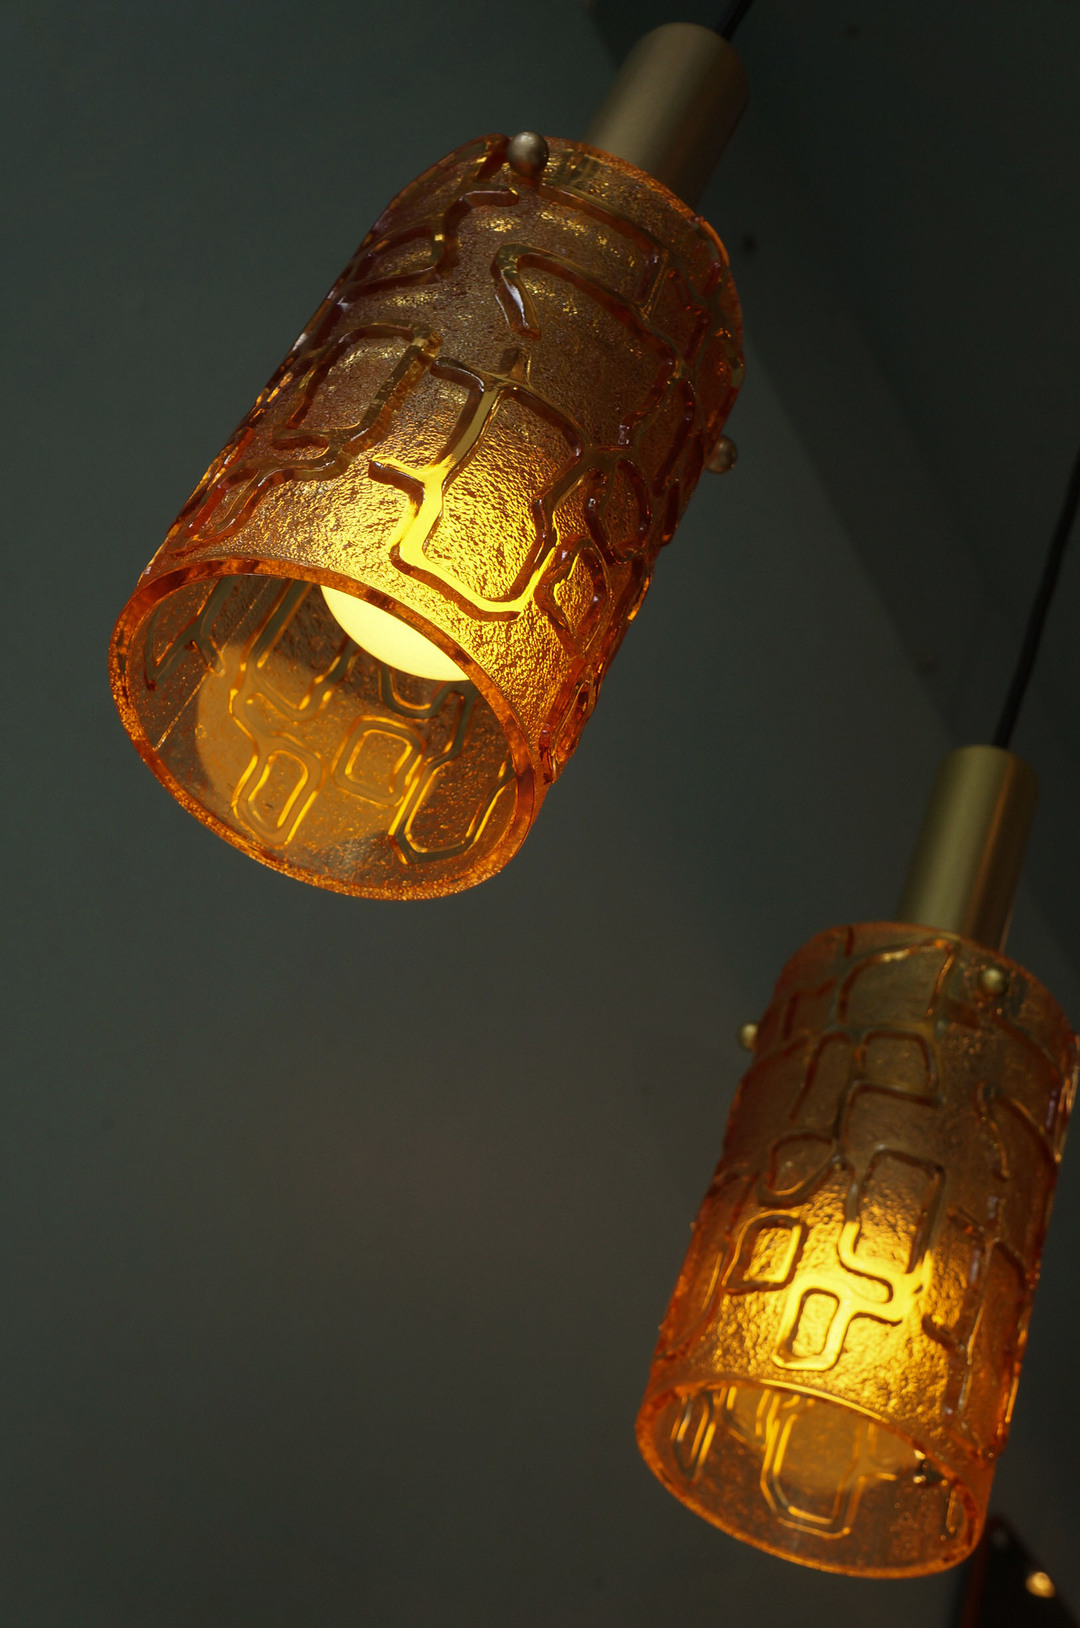 Scandinavian Vintage Style Amber Glass Pendant Light/アンバーガラス ペンダントライト 北欧モダン 照明 レトロ ヴィンテージスタイル